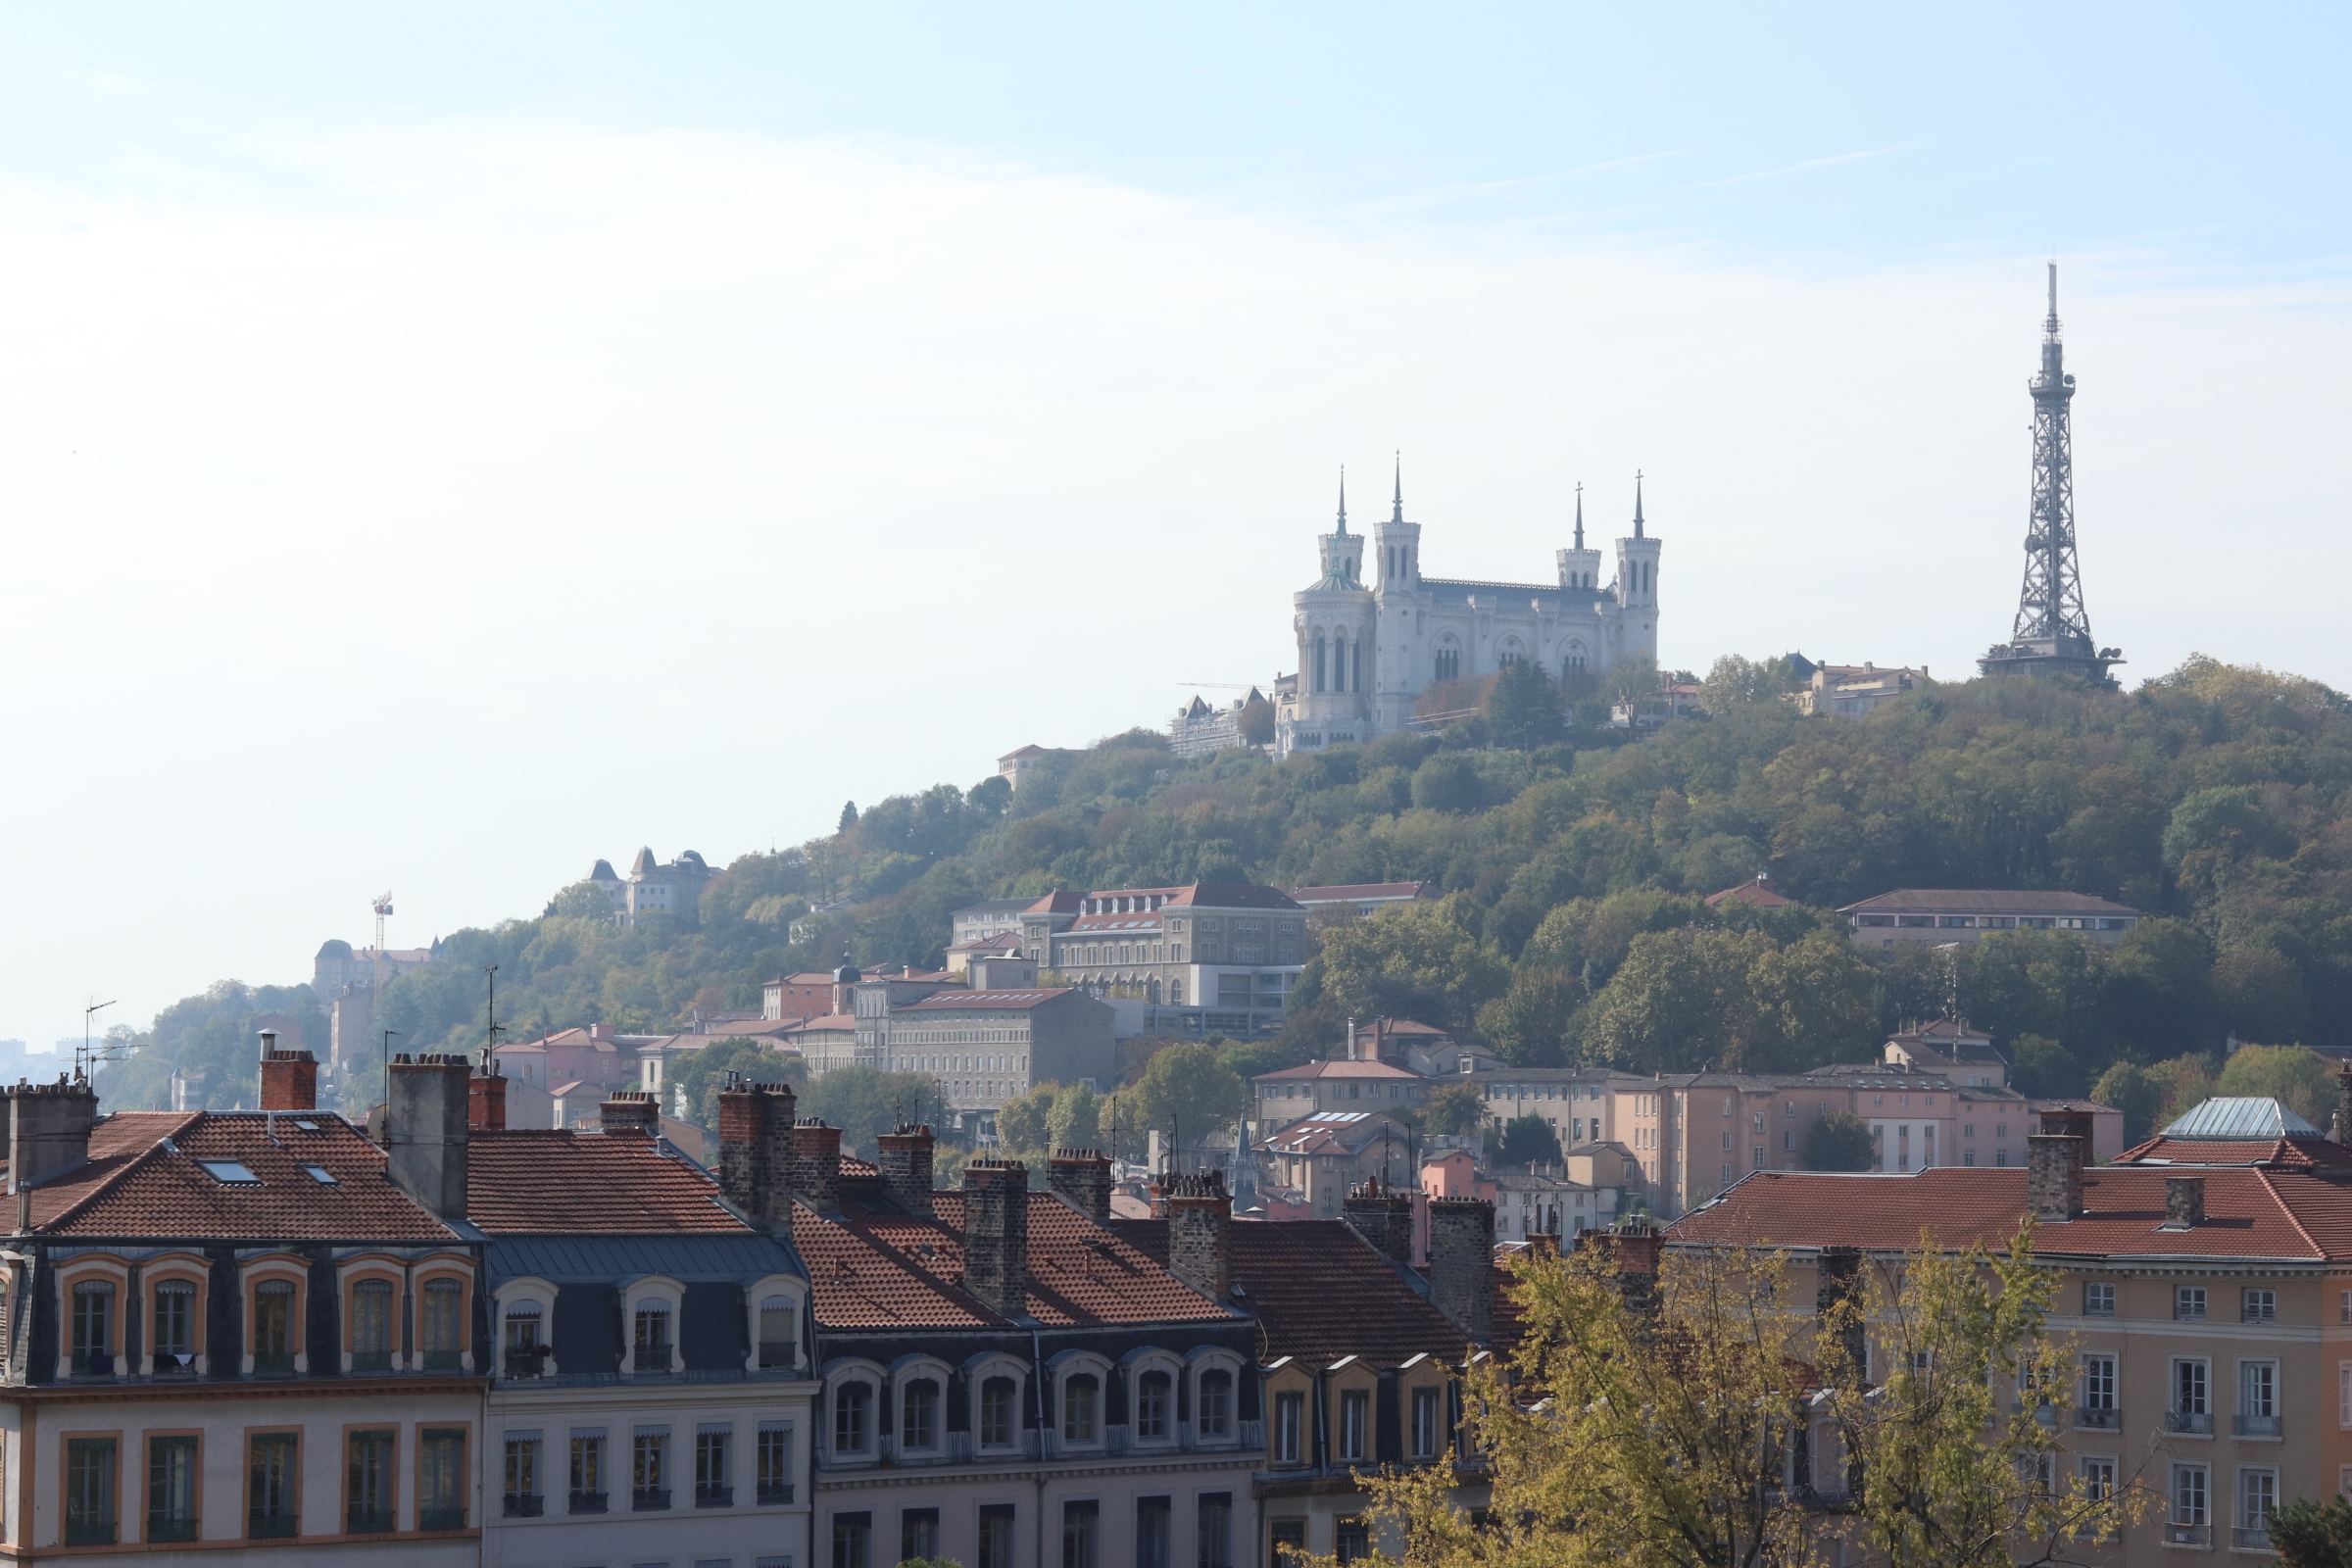 Another blown out image of Lyon